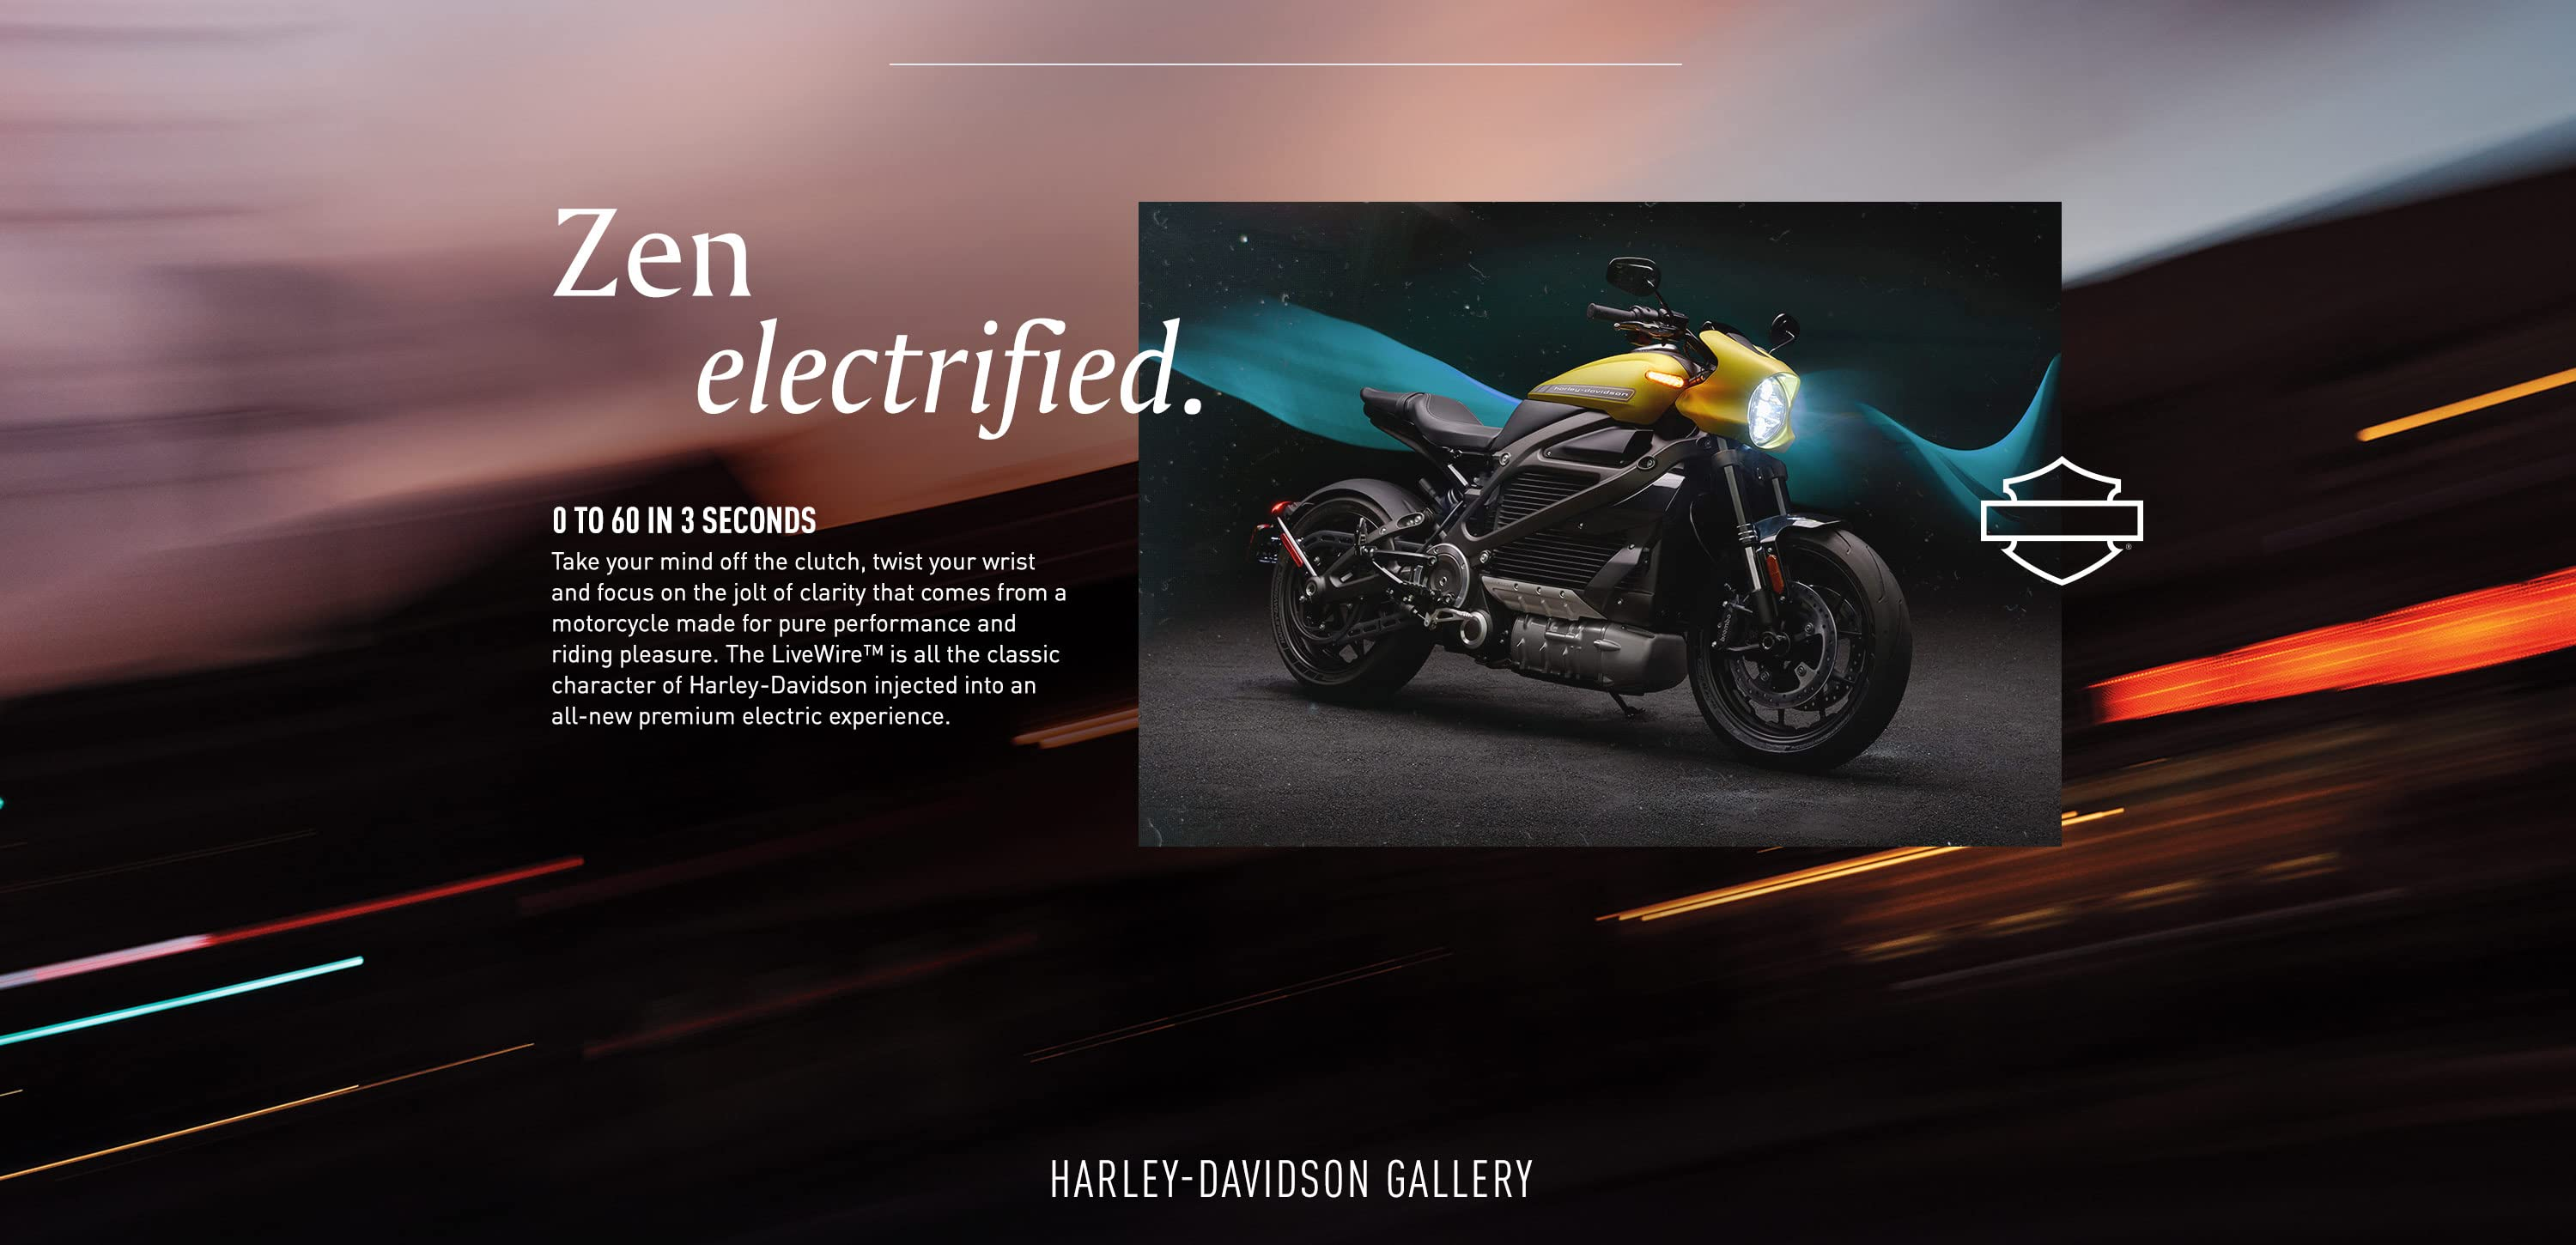 0 to 60 in 3 seconds. The Livewire is all the classic character of harley-davidson injected into an all-new premium electric experience.